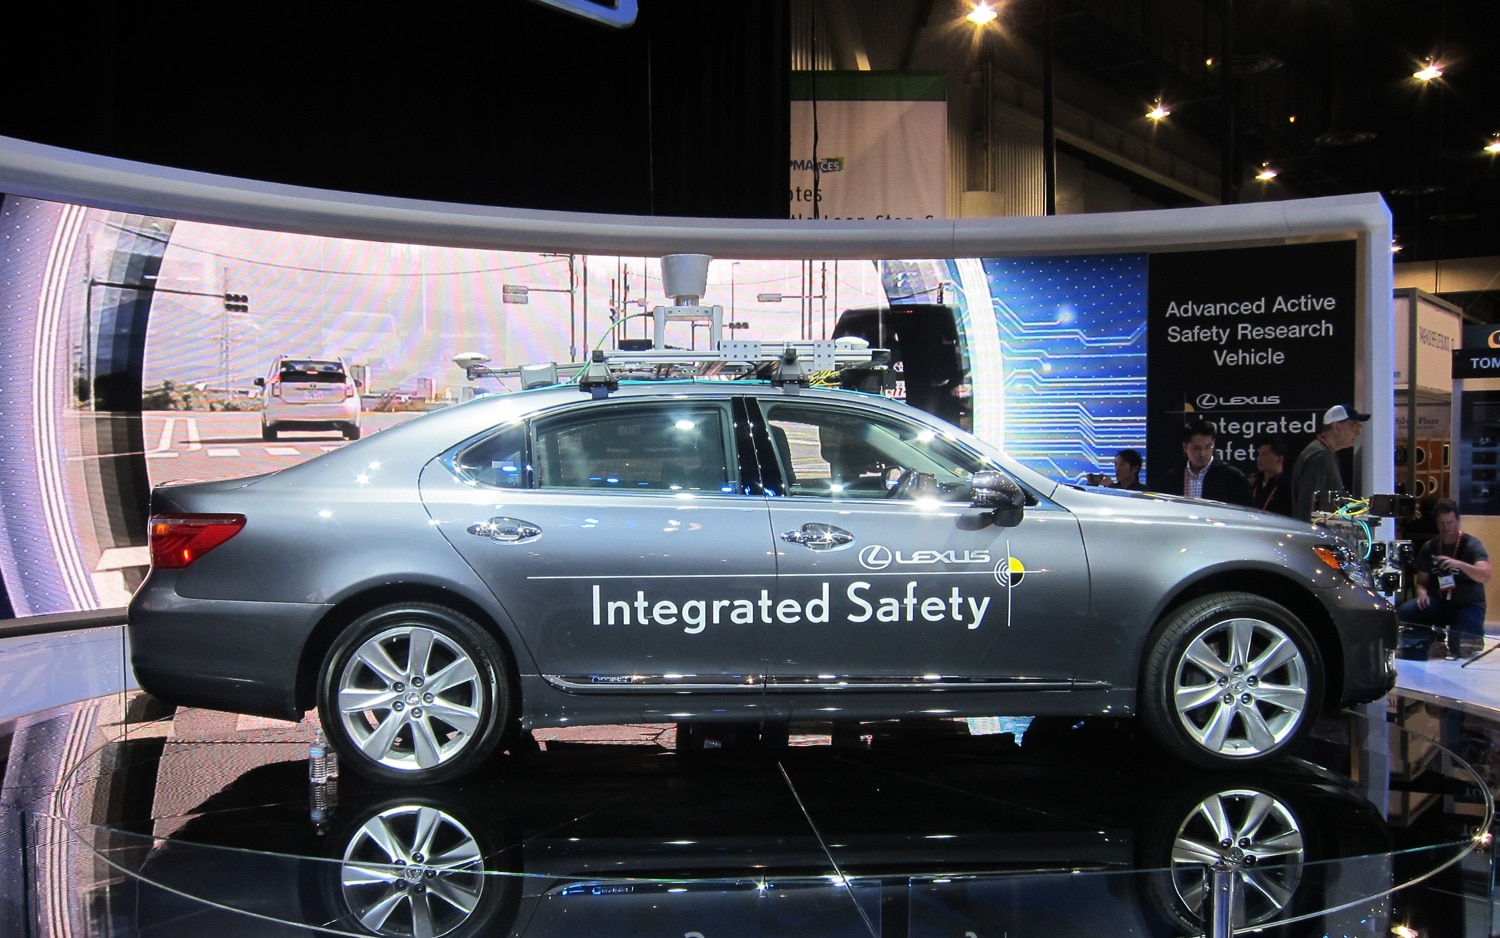 Lexus Advanced Active Safety Research Vehicle Profile1